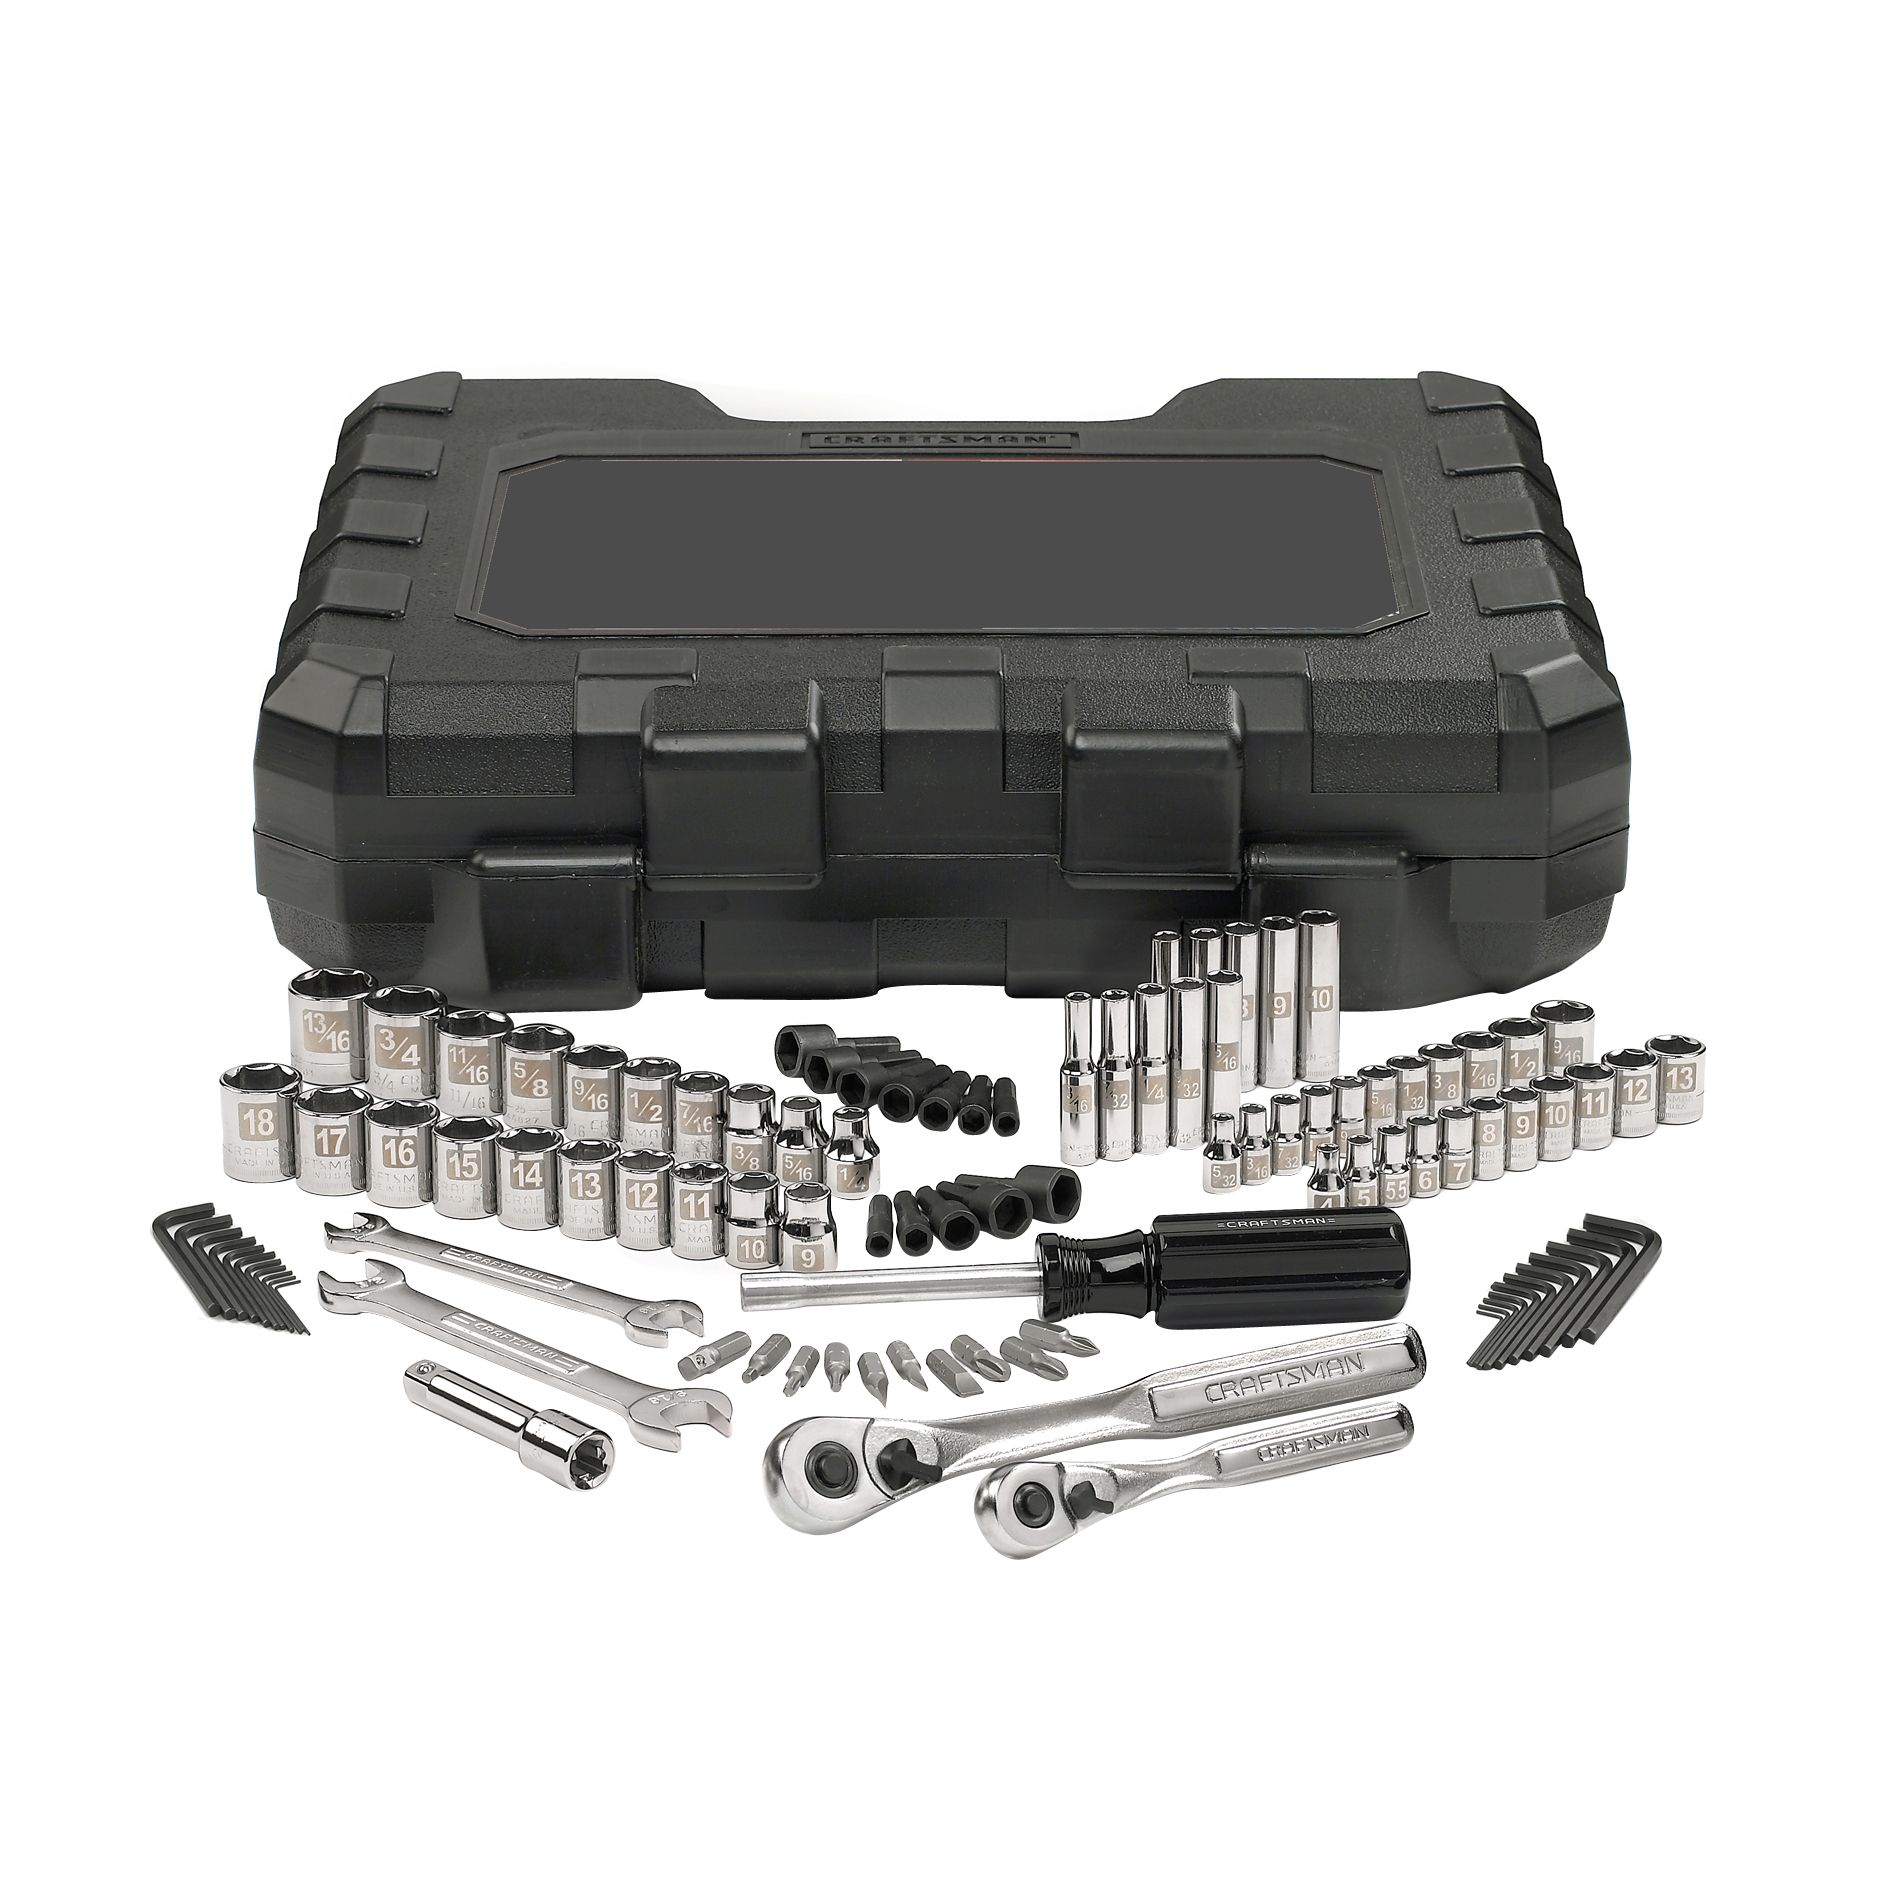 102 pc. Mechanic's Tool Set